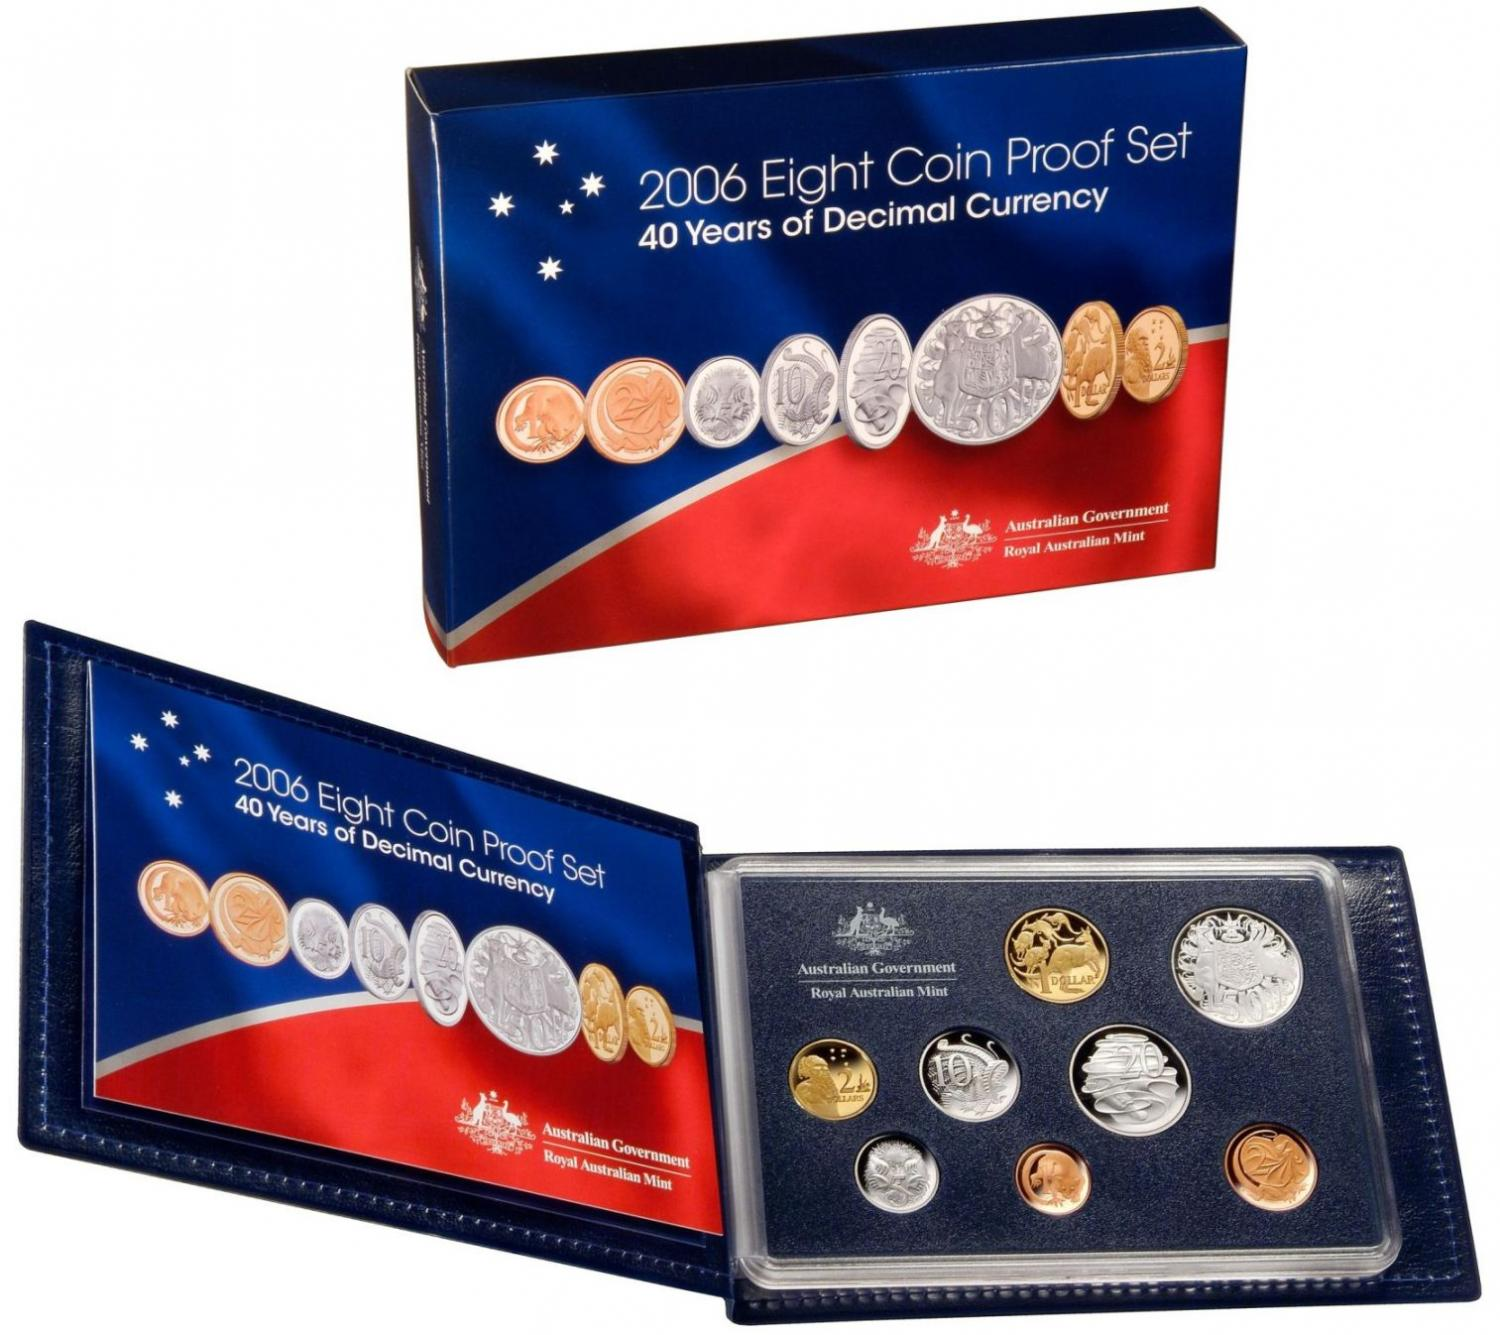 Thumbnail for 2006 Proof Set of Coins